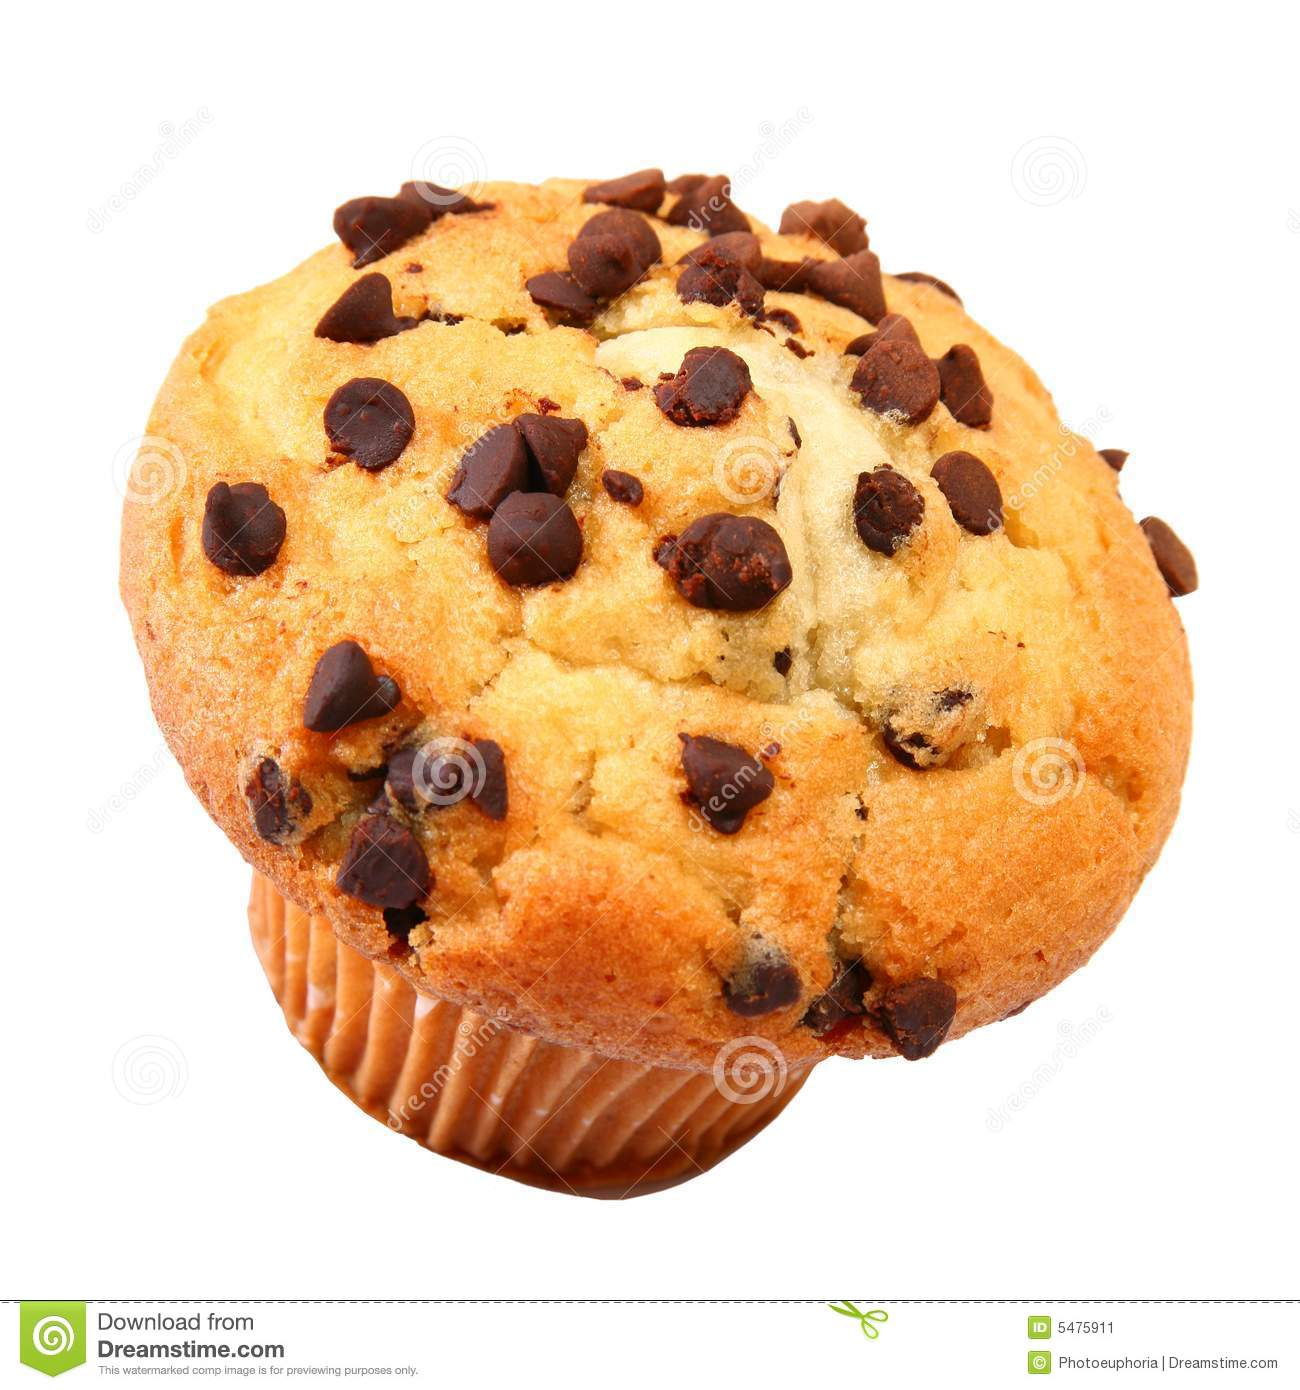 Chocolate Chip Muffin Stock Image - Image: 5475911